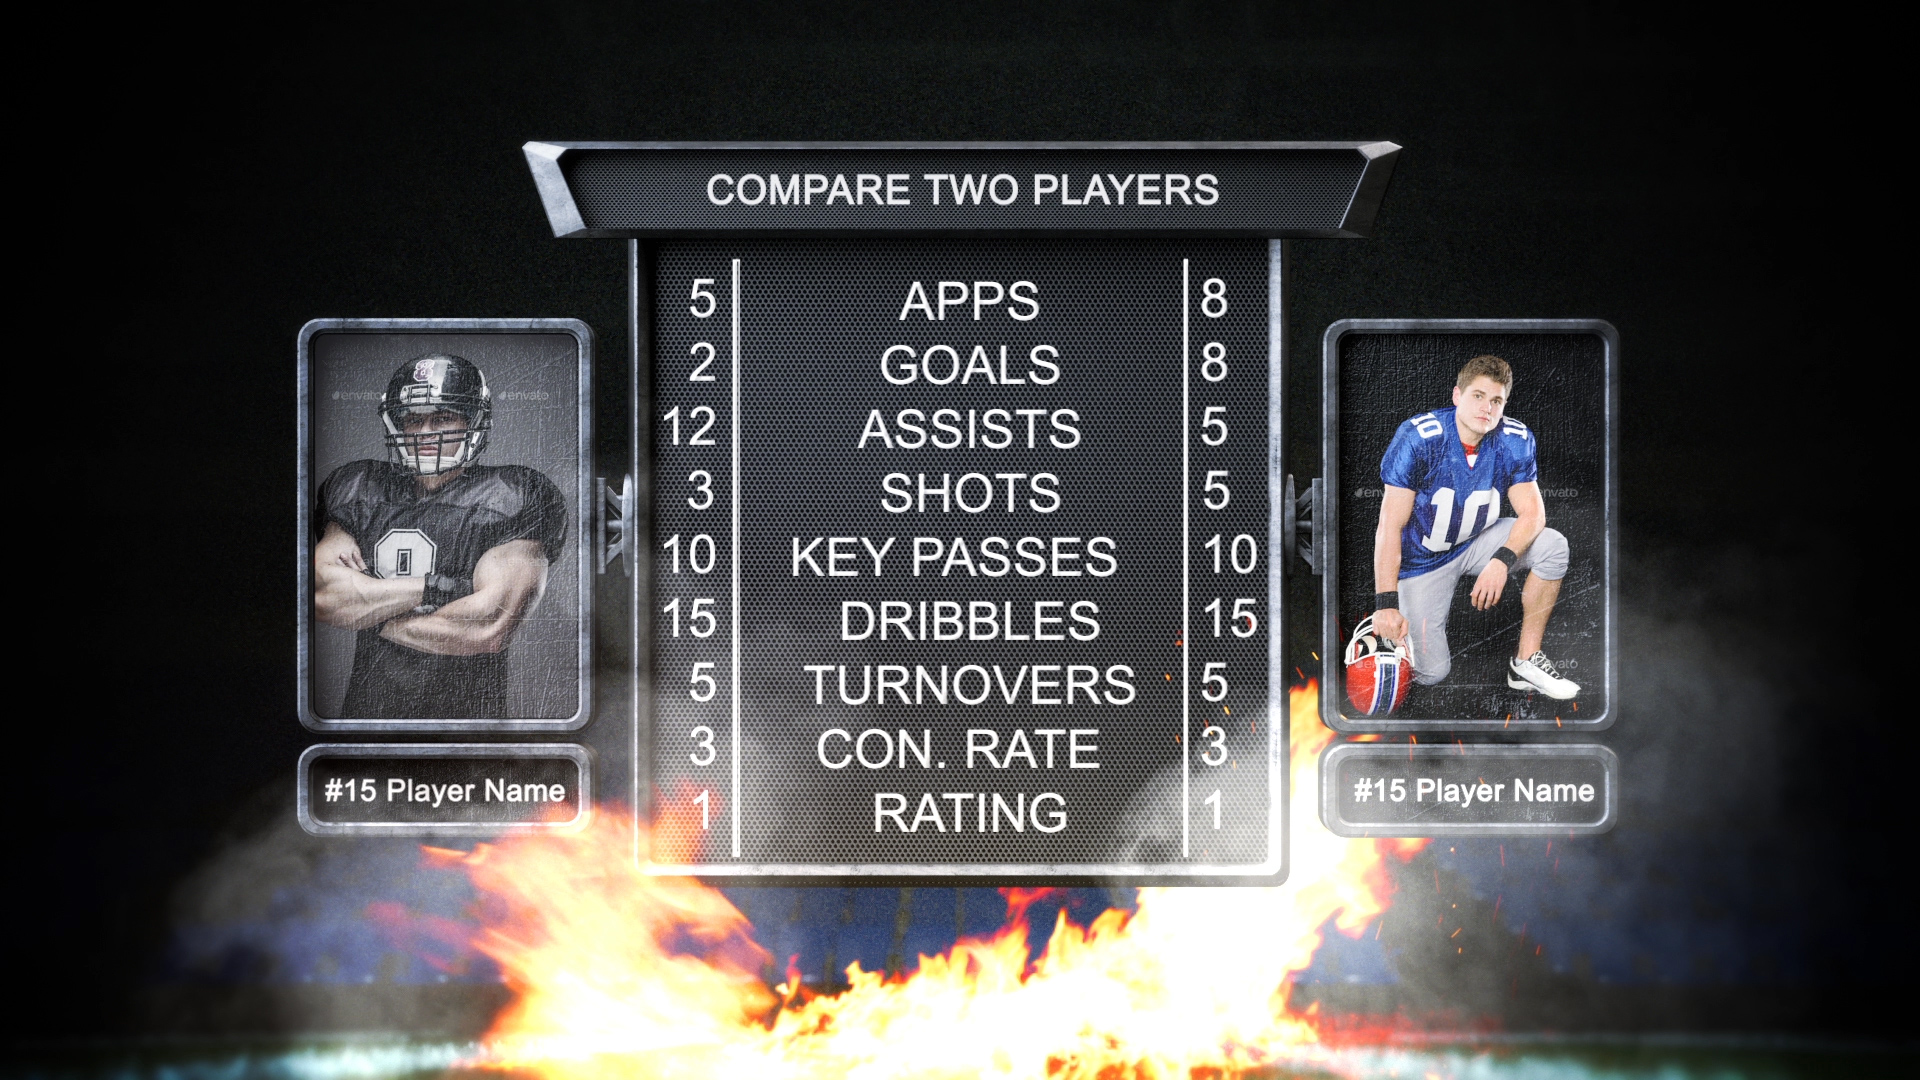 Football template, Football Intro, Football AE project, Free, American football intro, American football, football, US, United states, Canada, gridiron football,Defensive unit, Offensive unit, quarterback, Scoring, Field and equipment, Advancing, the, ball, and downs, NFL,  National Football League,  National Collegiate Athletic Association, NCAA, football league, League, College football, professional football,  Division I,  Division II,  Division III, Division, championship, Super Bowl, The NFL championship game,  European Football League, EFL,  Eurobowl, EFAF Cup, Cup, Students, American football, Tom Brady, Peyton Manning, New England Patriots, Peyton Manning, Denver Broncos, Aaron Rodgers, Green Bay Packers, Drew Brees, Football, American Football, Madden, Rugby, Football Intro, American Football Intro, NFL, Draft, NFL Football, Superbowl, Super Bowl, super bowl, National Football League,  American Football League, Energetic, fun, dynamic logo reveal, broadcast, bumper, champions league, New Orleans Saints, J. J. Watt, Houston Texans, Adrian Peterson, New Orleans Saints, Cam Newton, Carolina Panthers, Joe Montana, Kansas City Chiefs, Ben Roethlisberger, Pittsburgh Steelers,broadcast, bumper, champions league, countdown, cup, football, promo, sports, top ten, transition